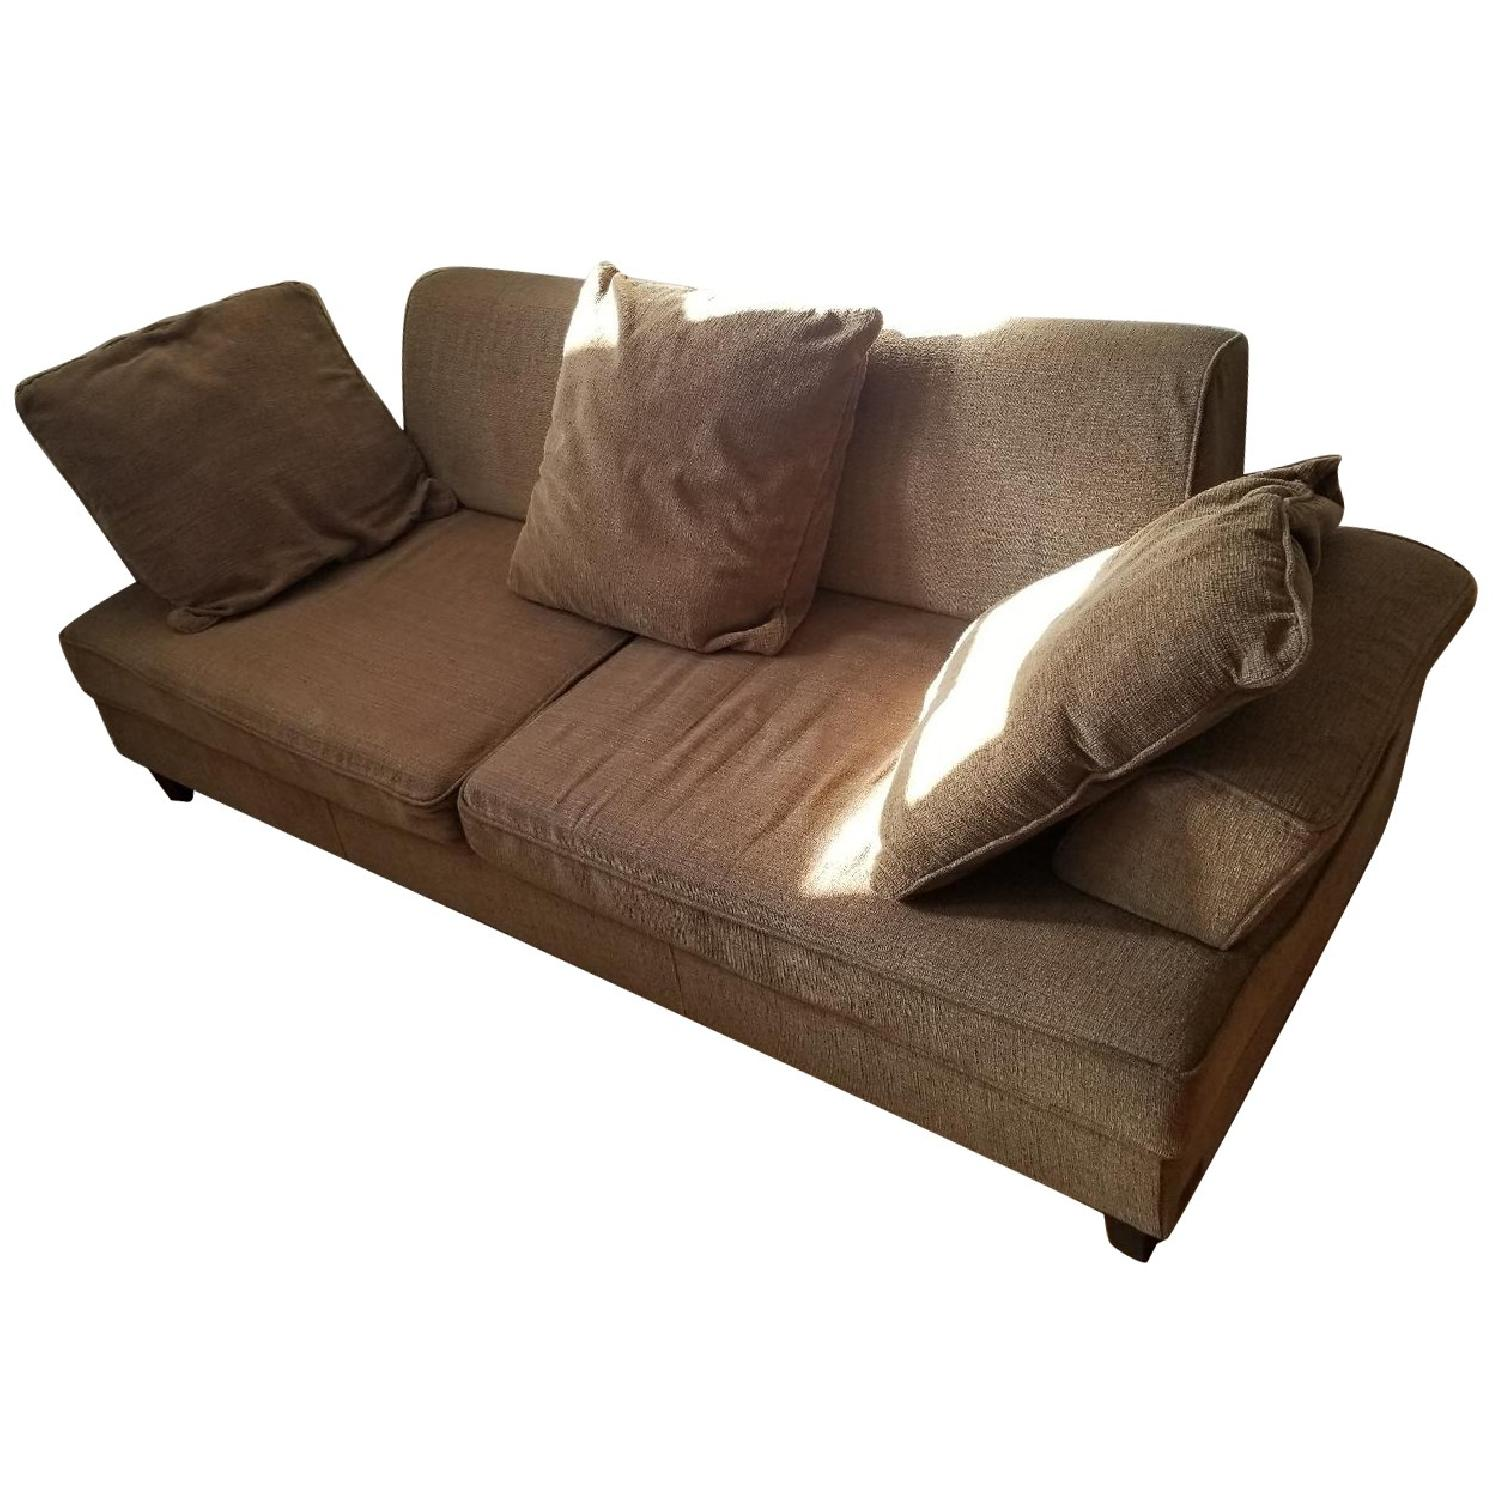 Normand Couture Cameleon Sofa